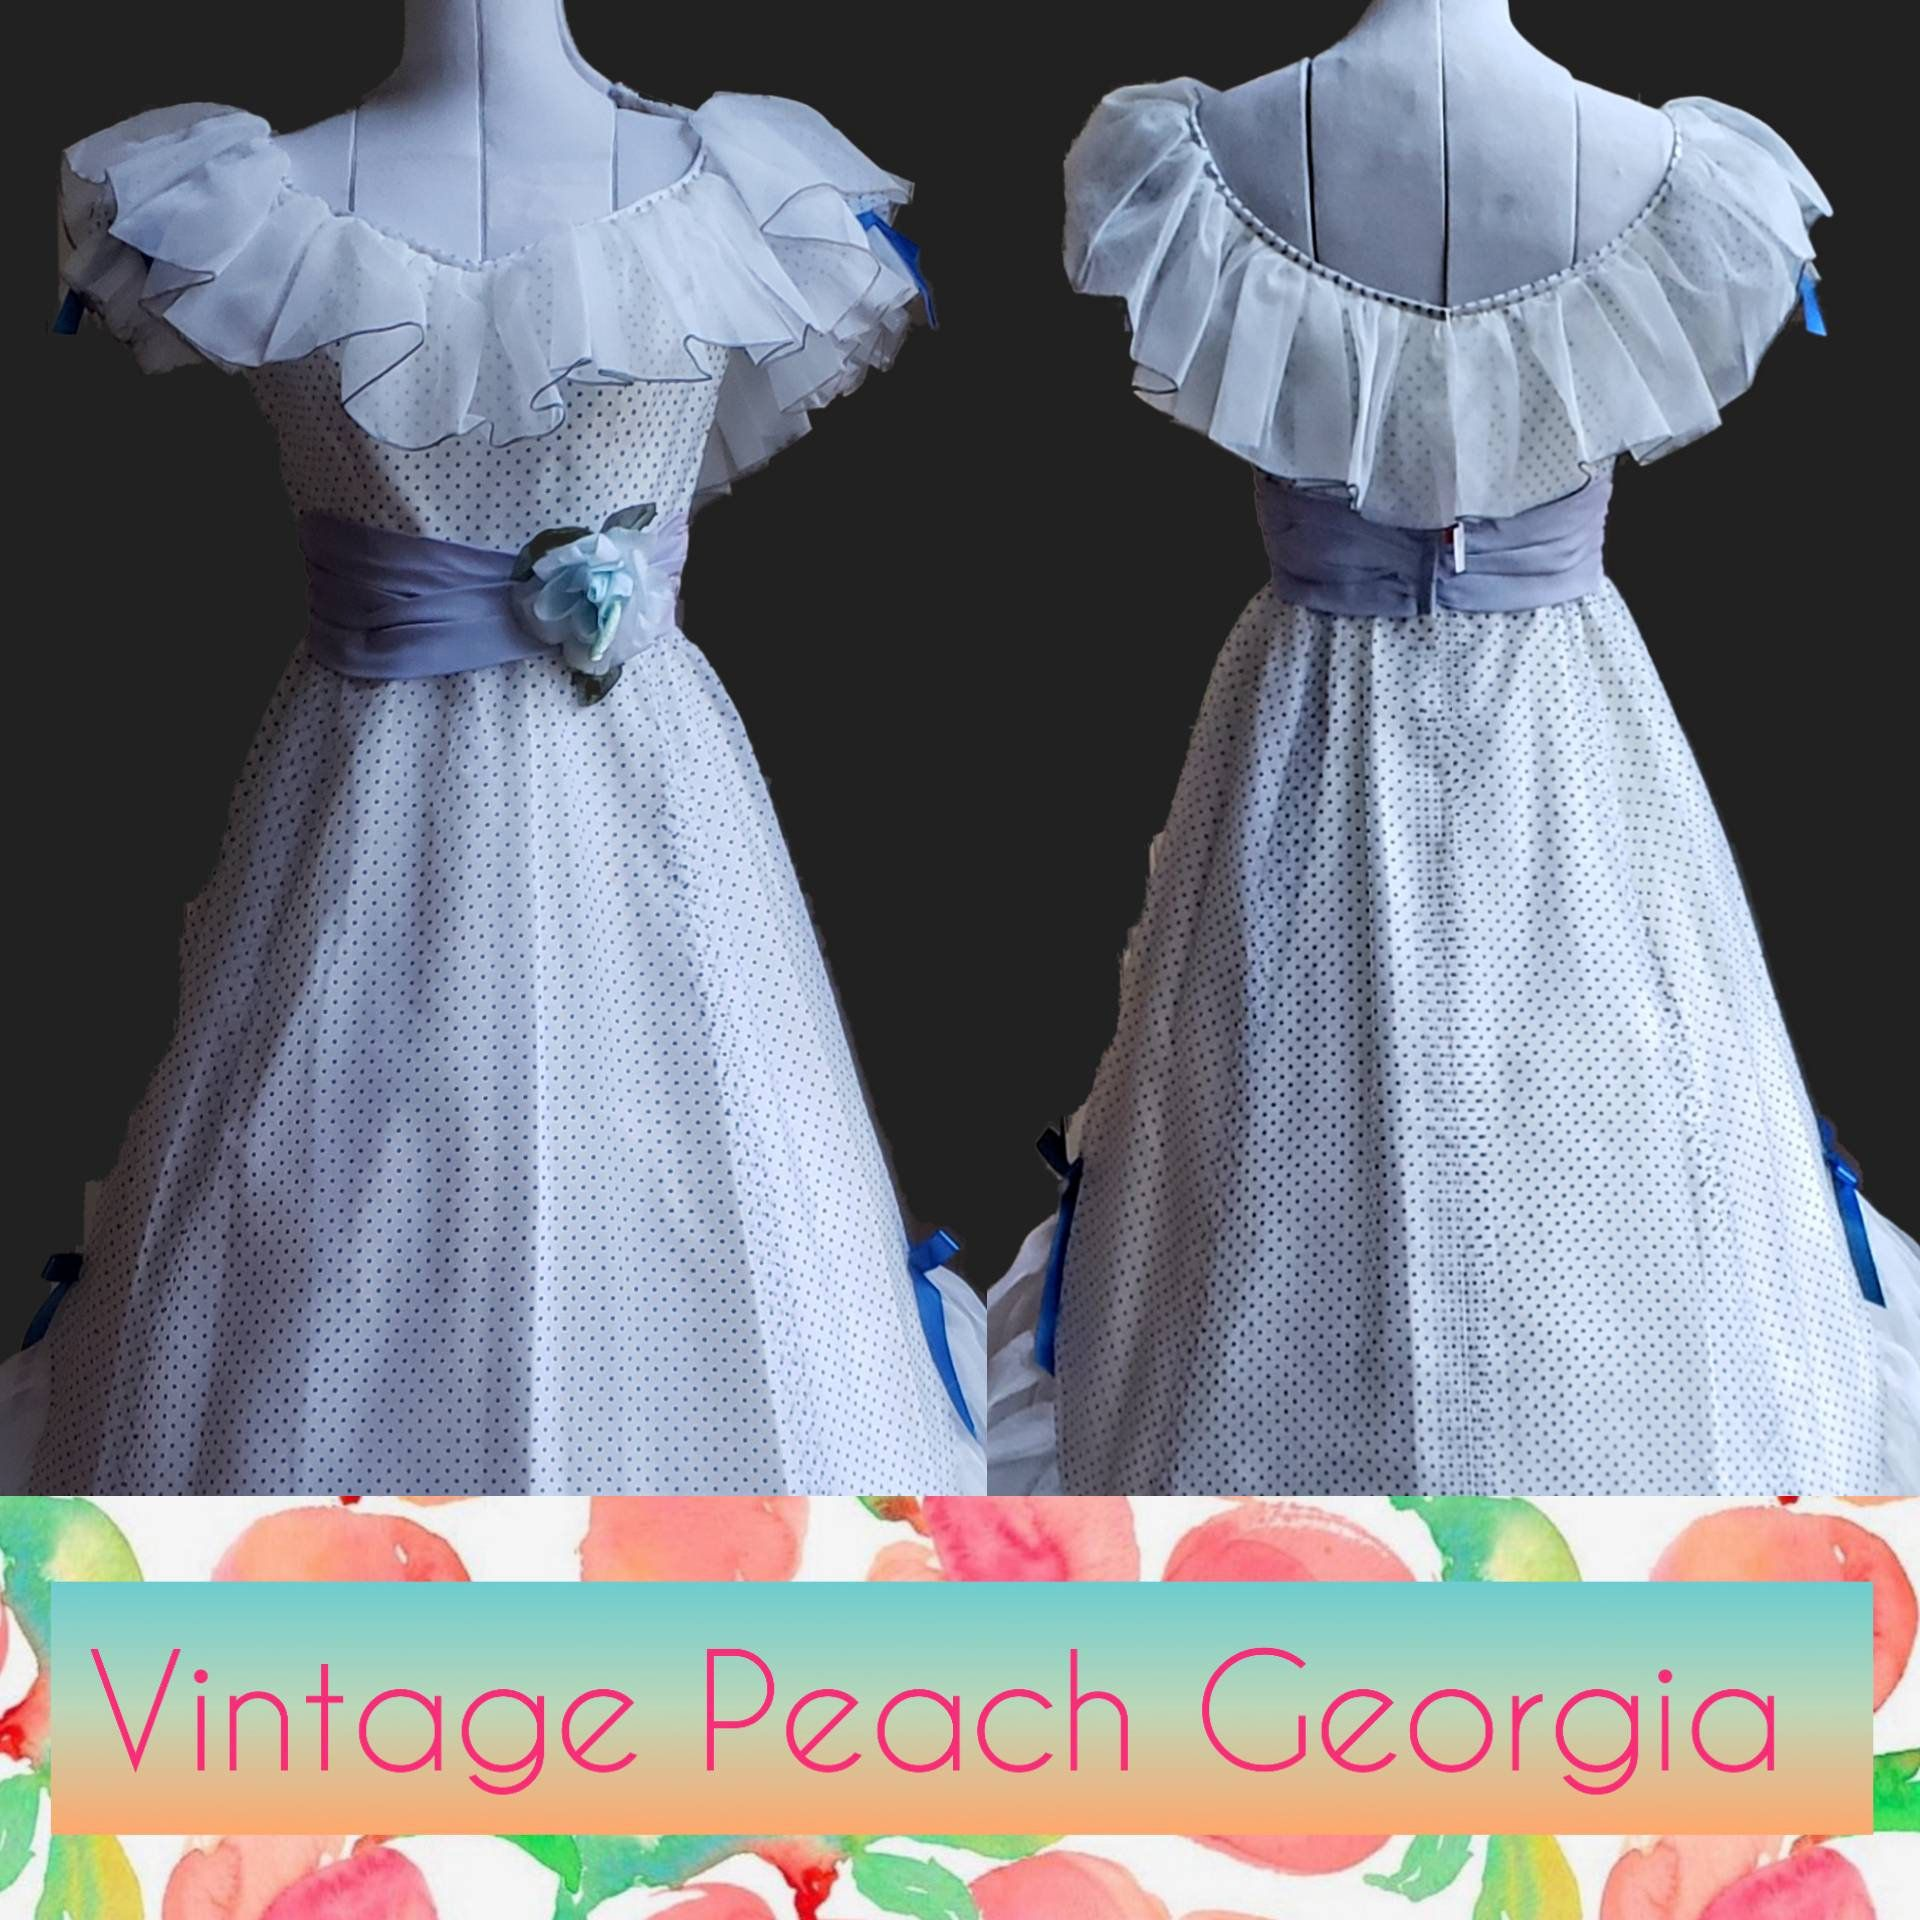 Vintage Prom Dress White With Blue Swiss Polka Dots Deadstock Nos By Vintagepeachgeorgia On Etsy Vintage Prom Prom Dresses Vintage Prom Dresses For Sale [ 1920 x 1920 Pixel ]